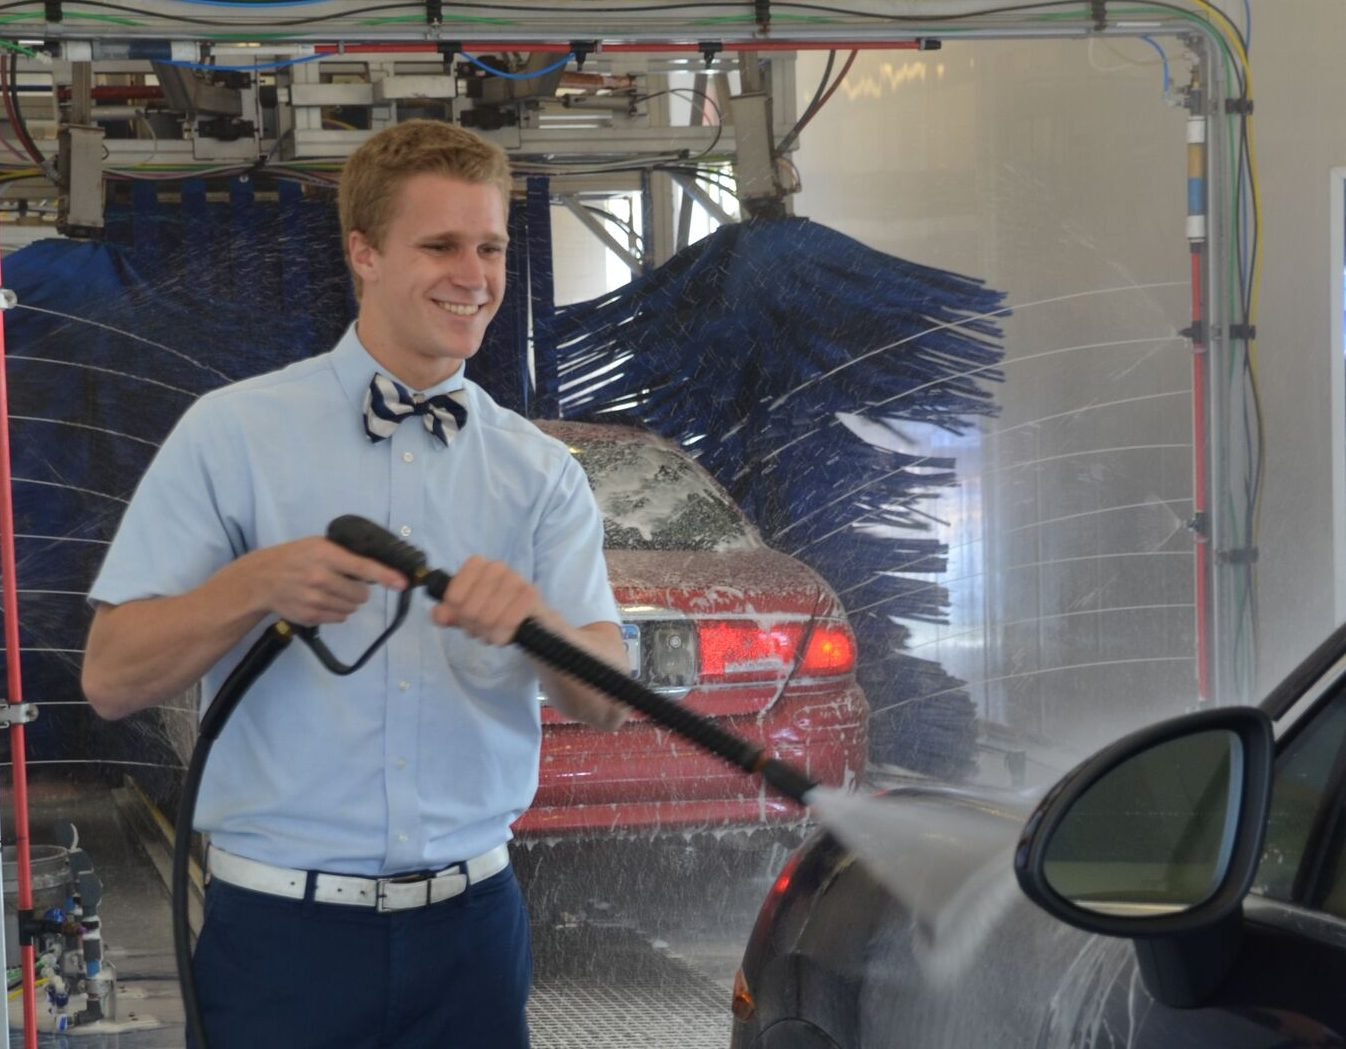 Alex Leszczynski  sprays a car at Royal Car Wash's Monroe location in Greece. (Contributed photo)